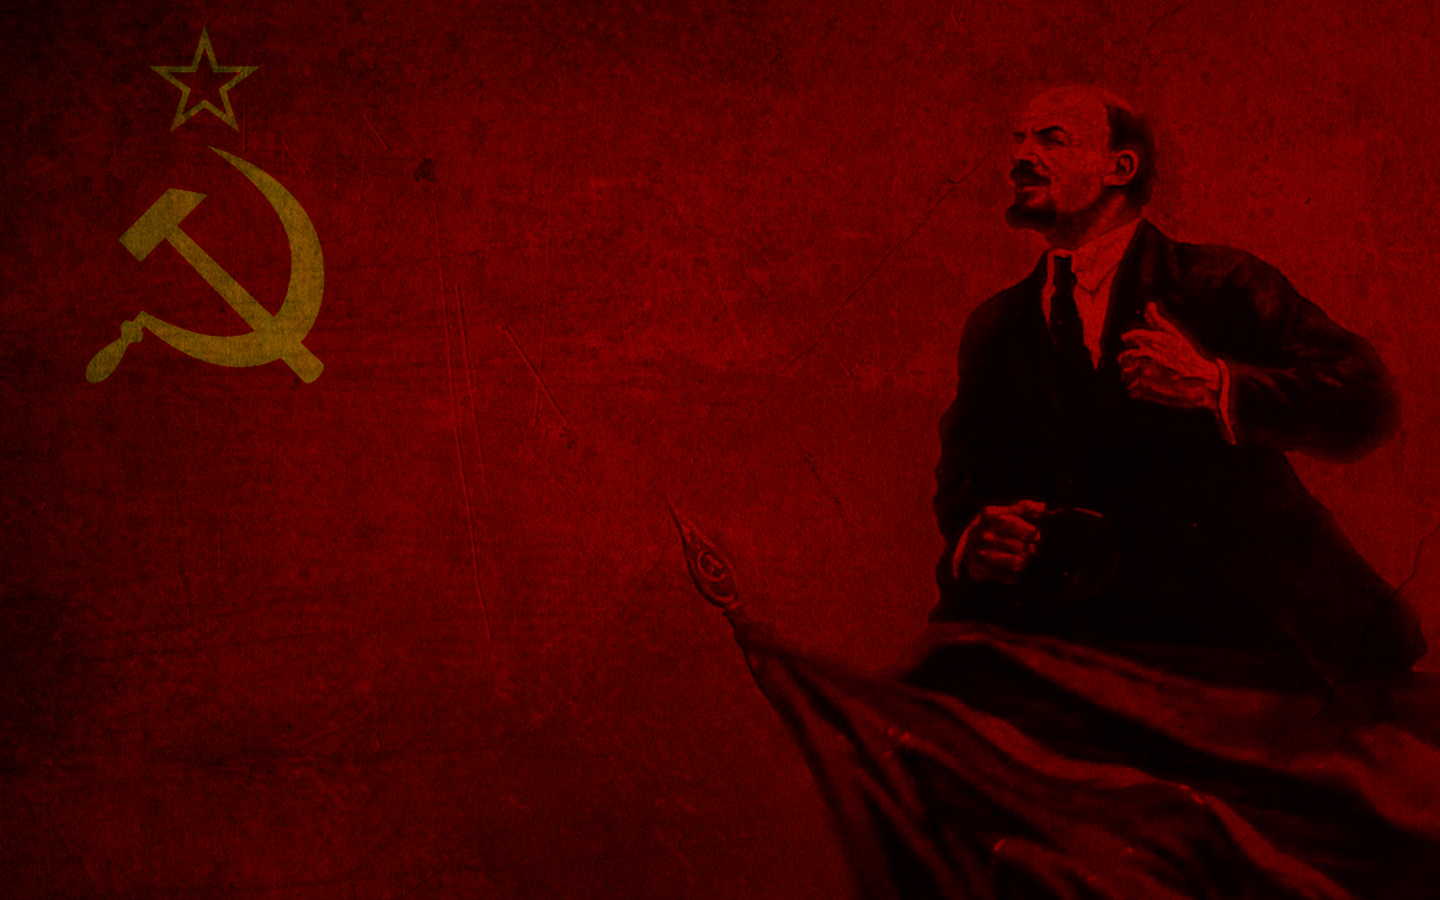 anarcho communist wallpapers - photo #34